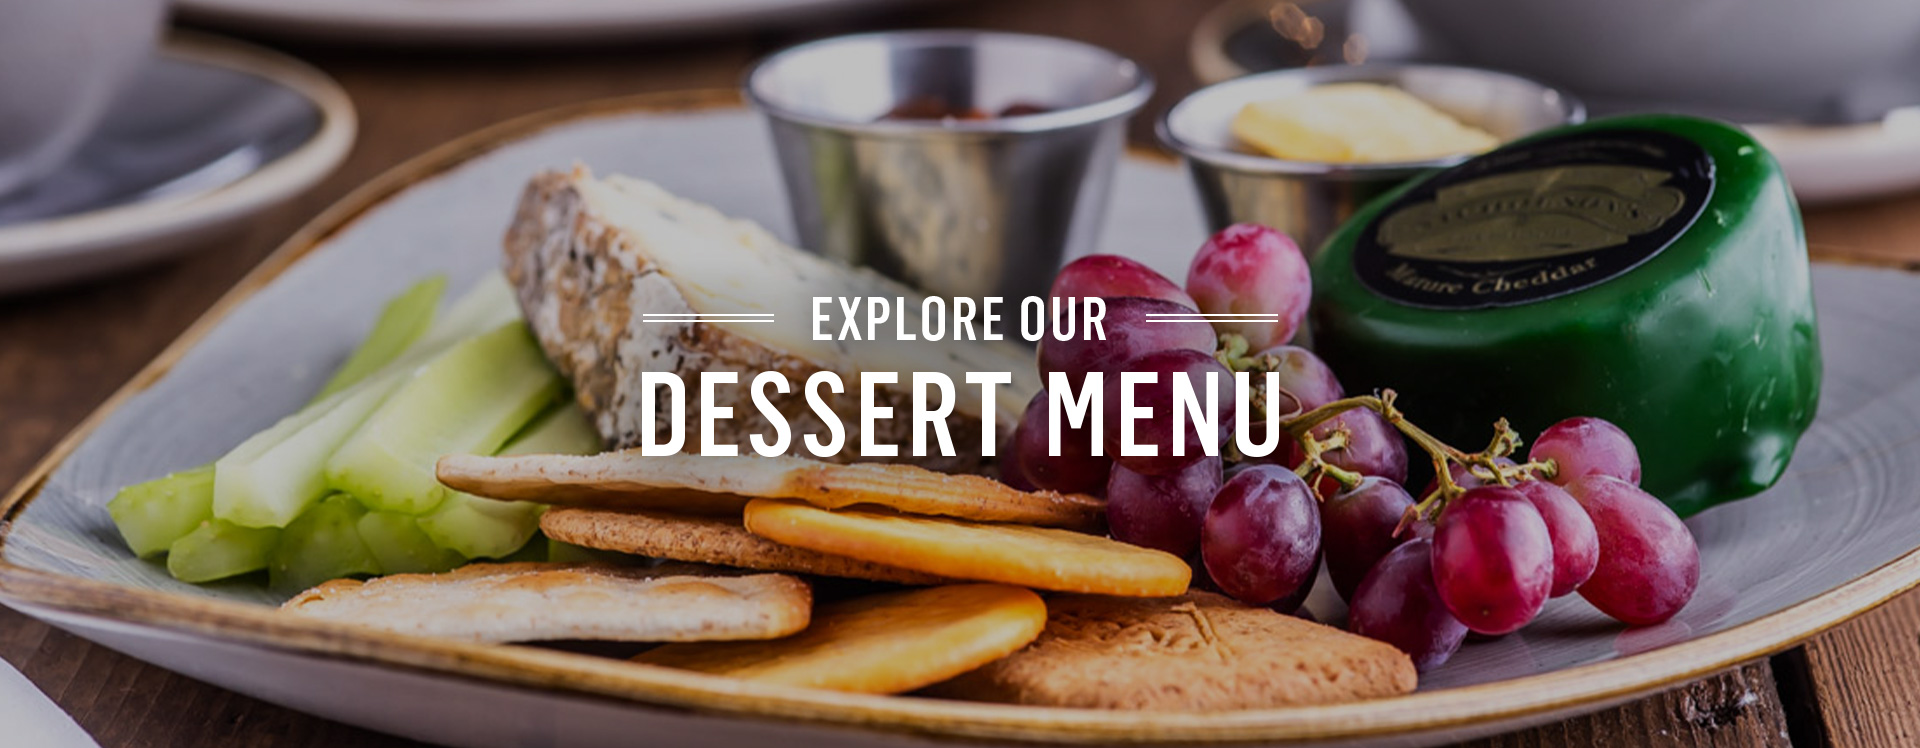 Dessert menu at The St George's Tavern - Book a table